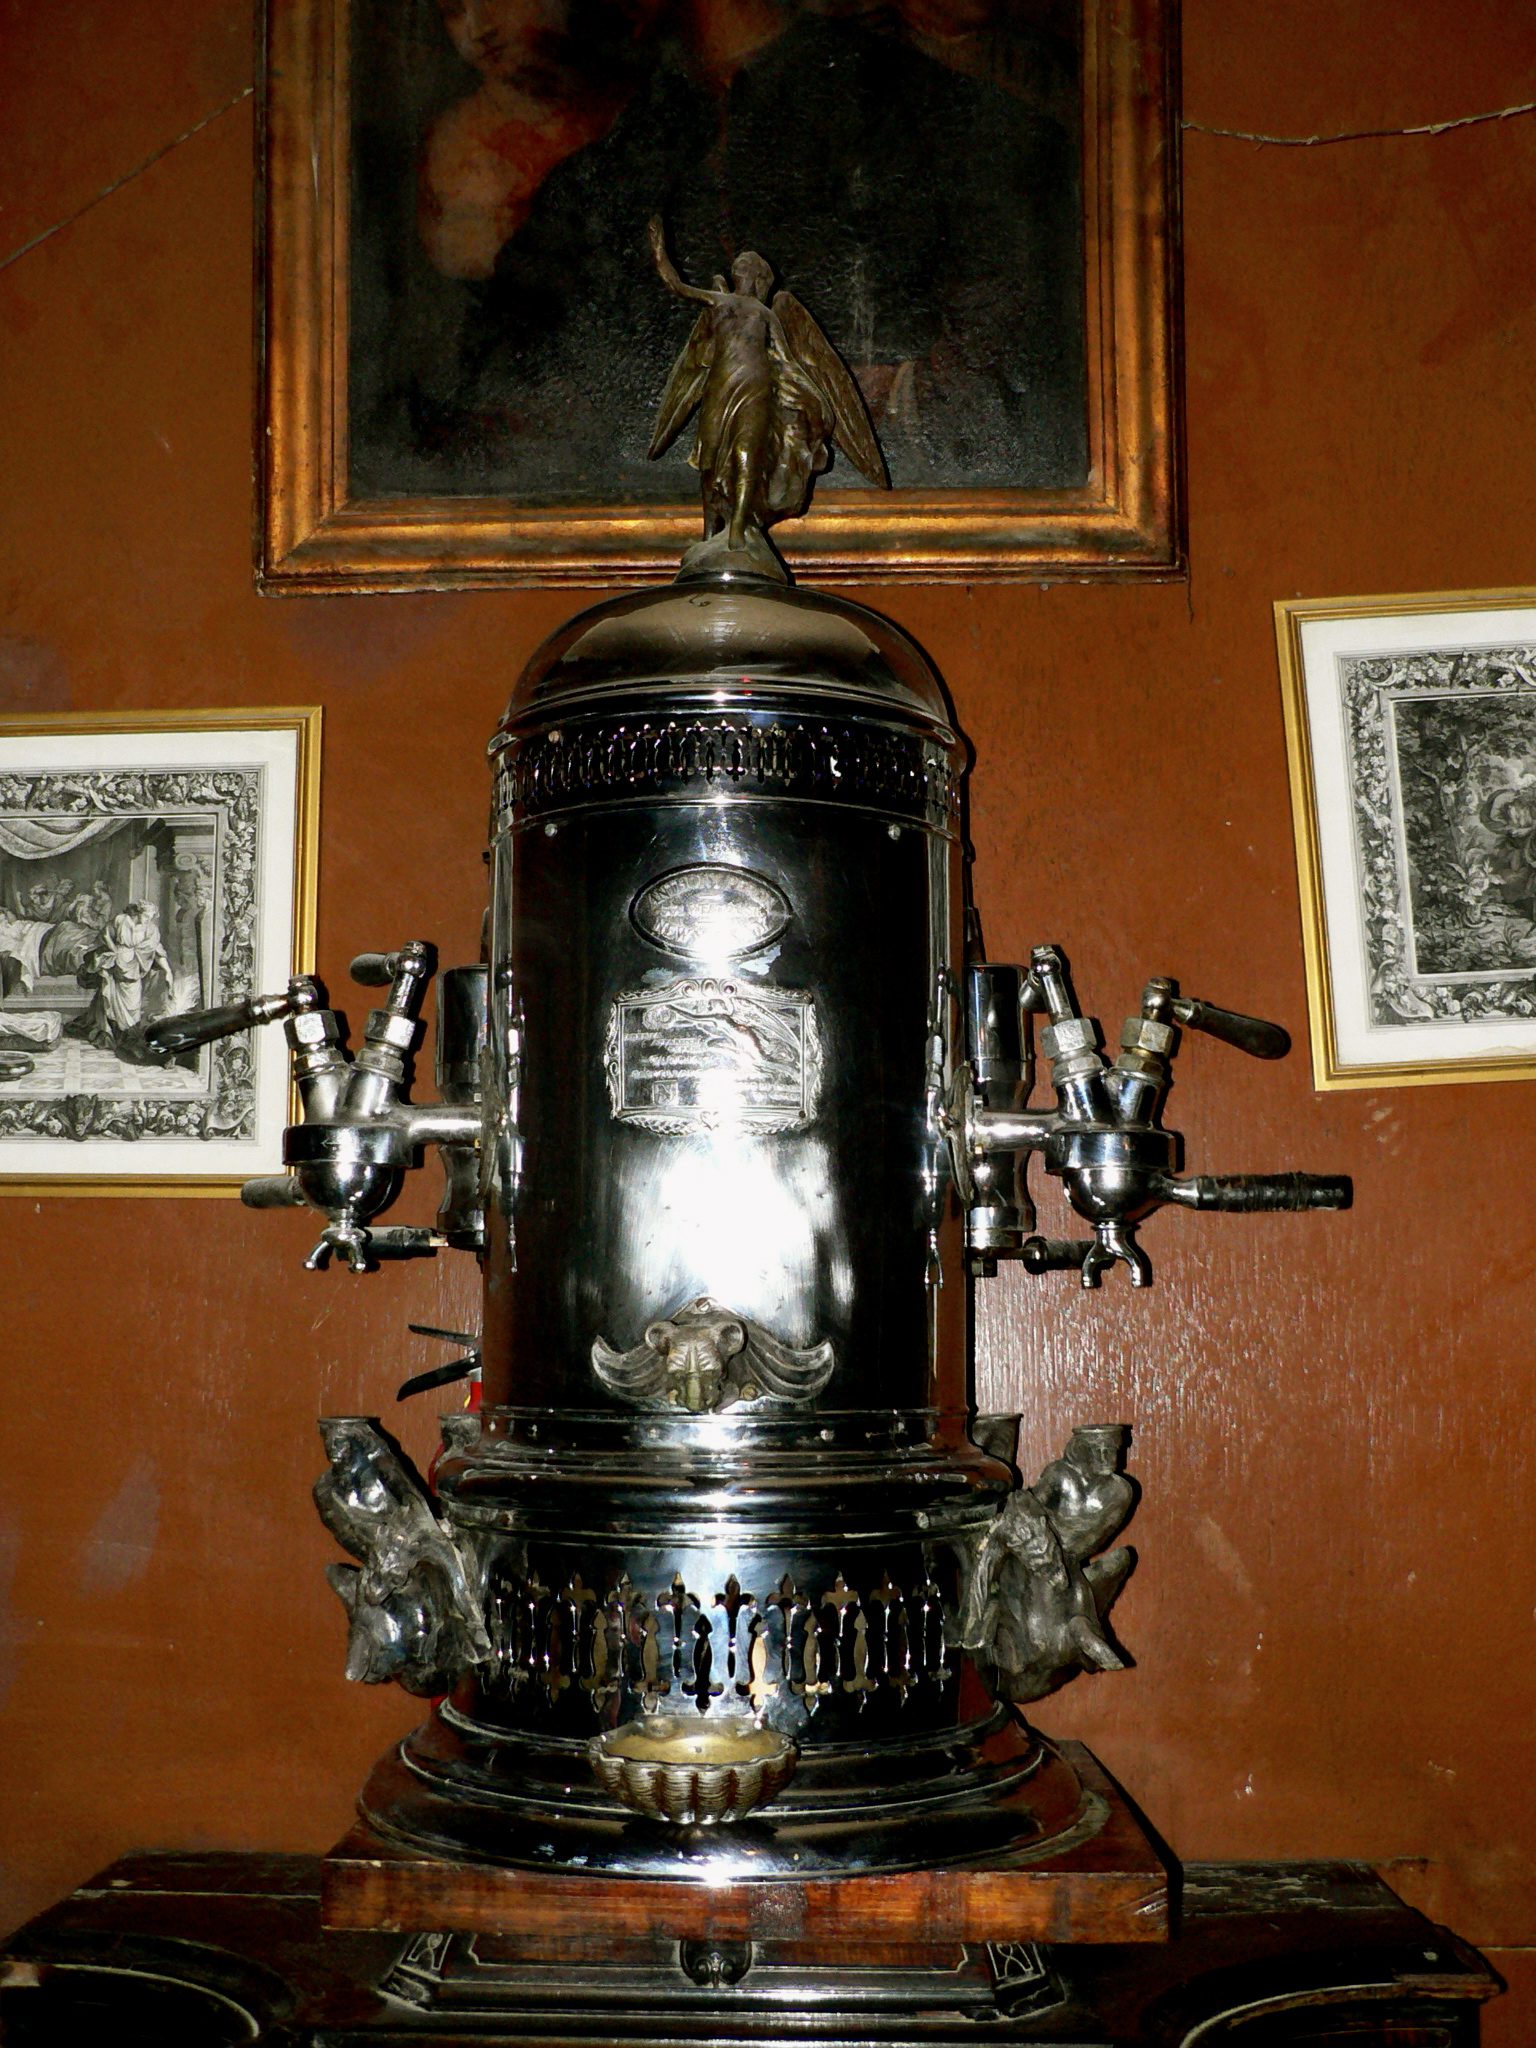 One of the early espresso coffee machine, built in 1900 and first showed to the public at the World Exposition in Turin (Italy) in 1902. This piece of craftmenship from the Belle Epoque period is jealously guarded and cared at the historic Caffé Reggio in New York City.